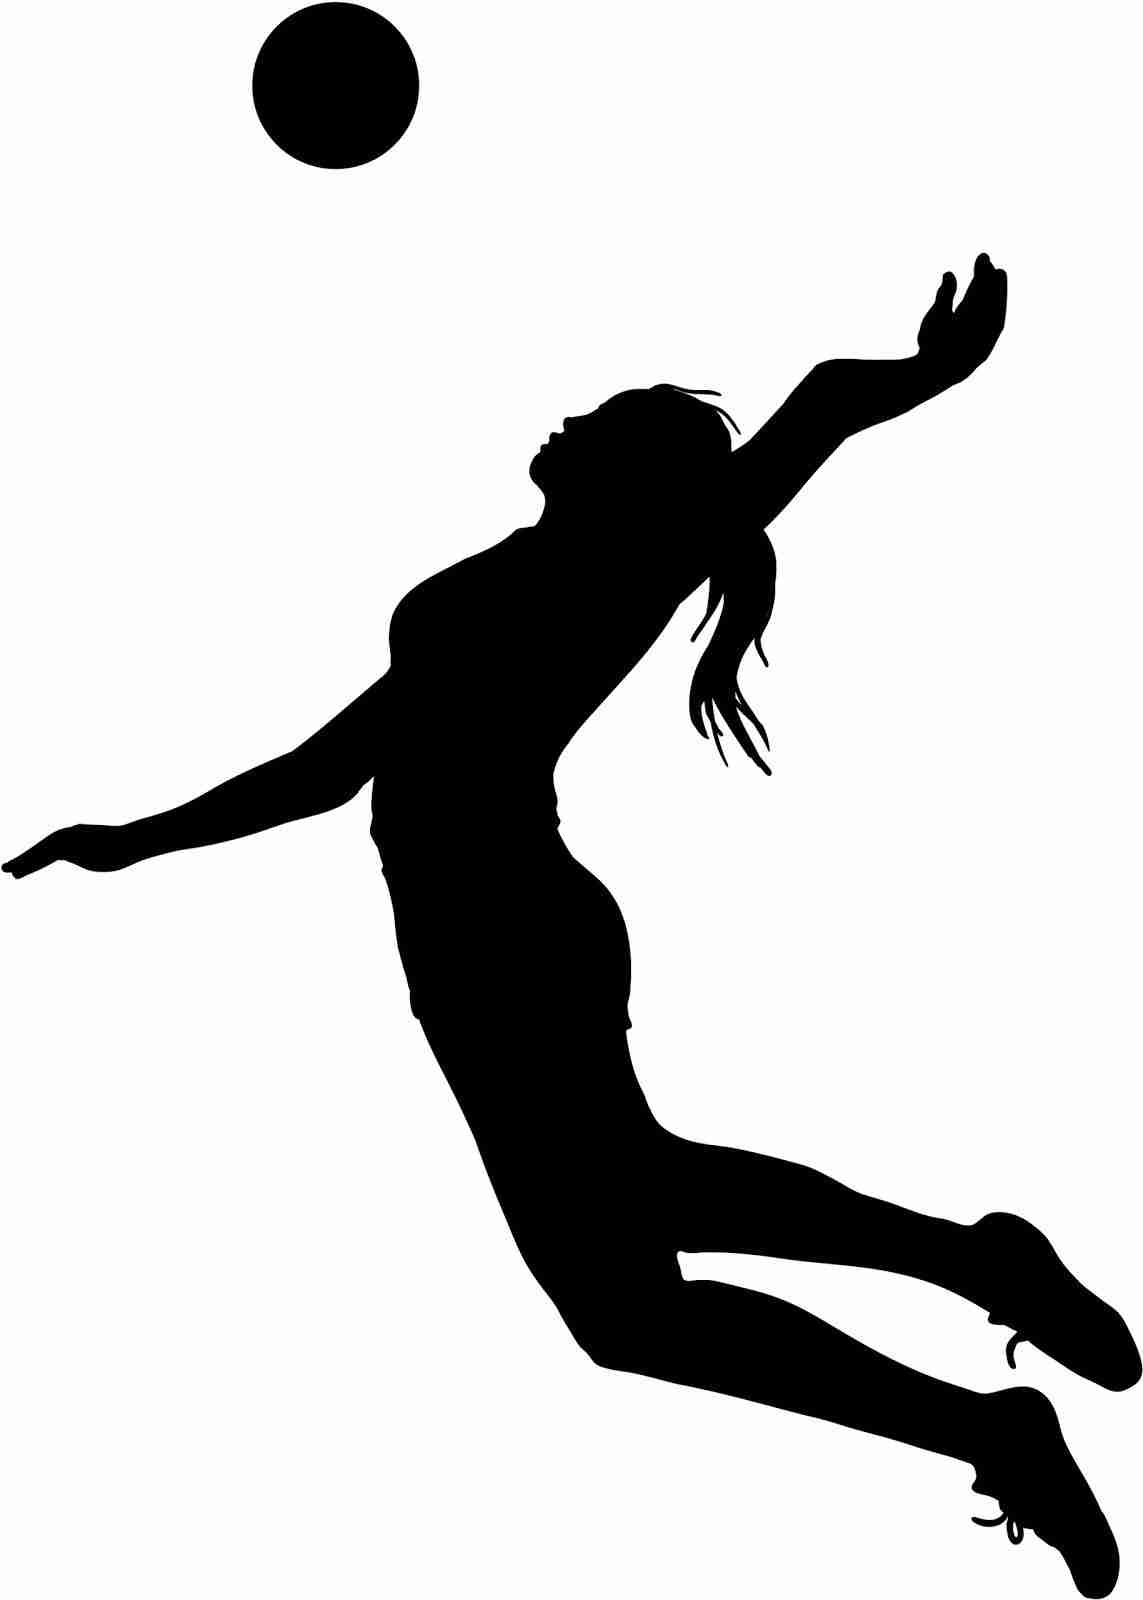 Volleyball Player Silhouette at GetDrawings.com | Free for ...